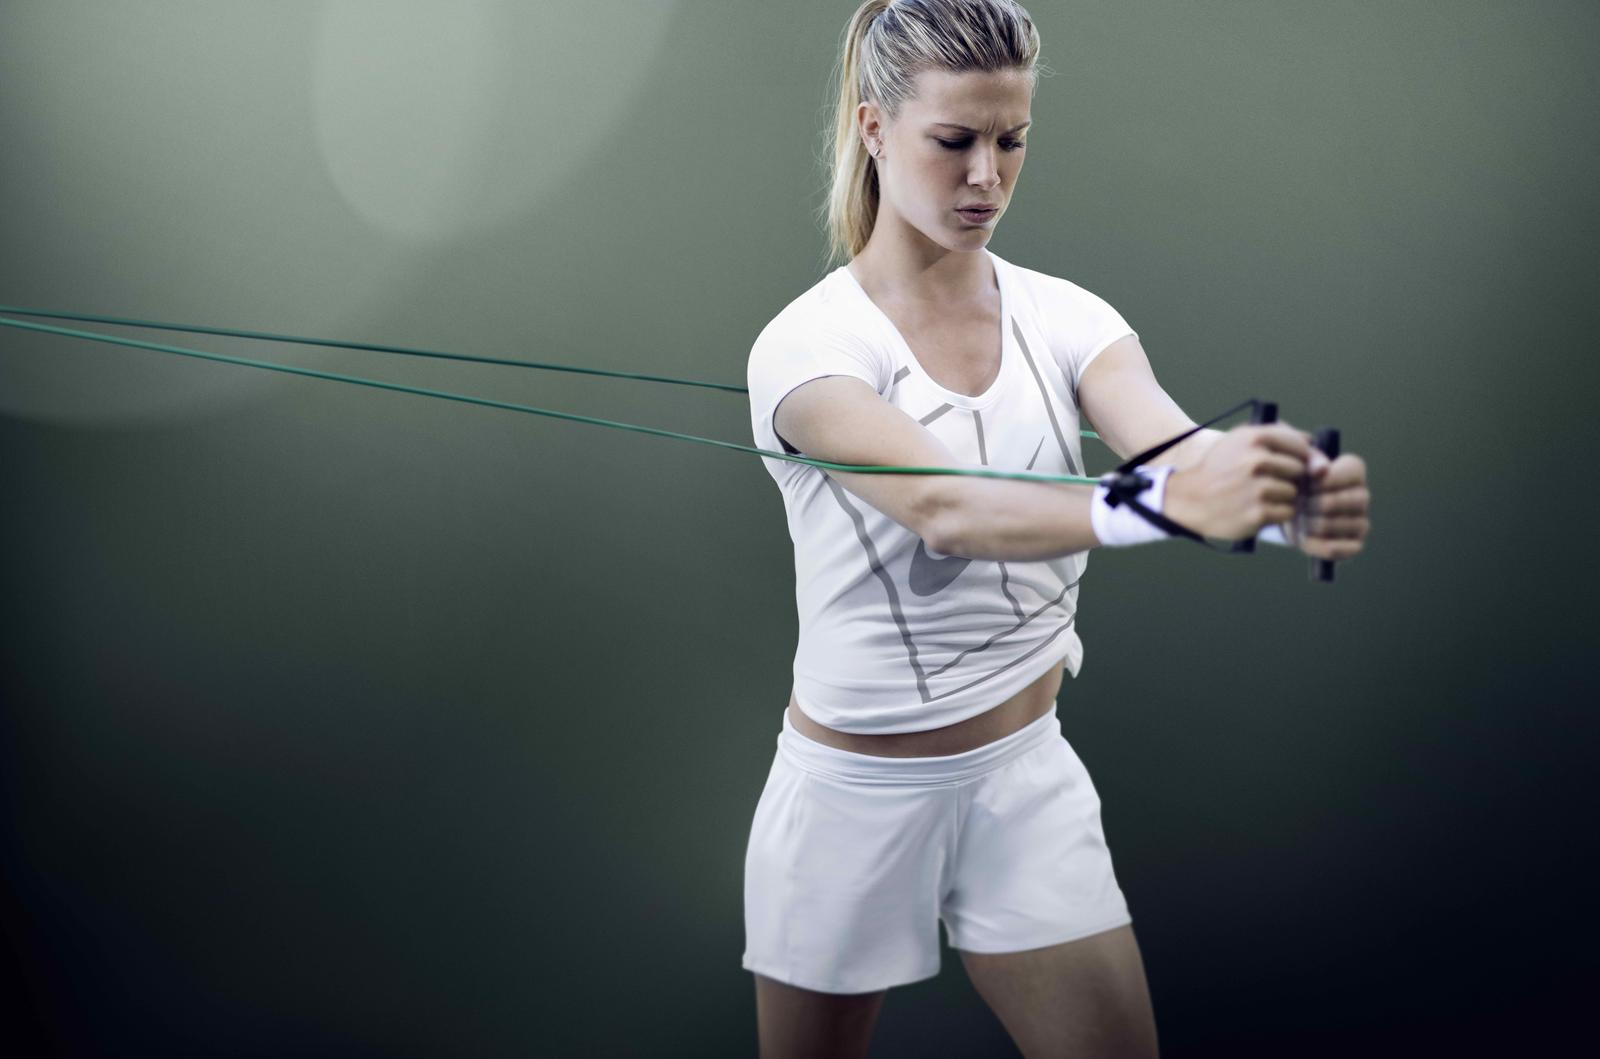 genie_bouchard_nikecourt_2_copy_native_1600